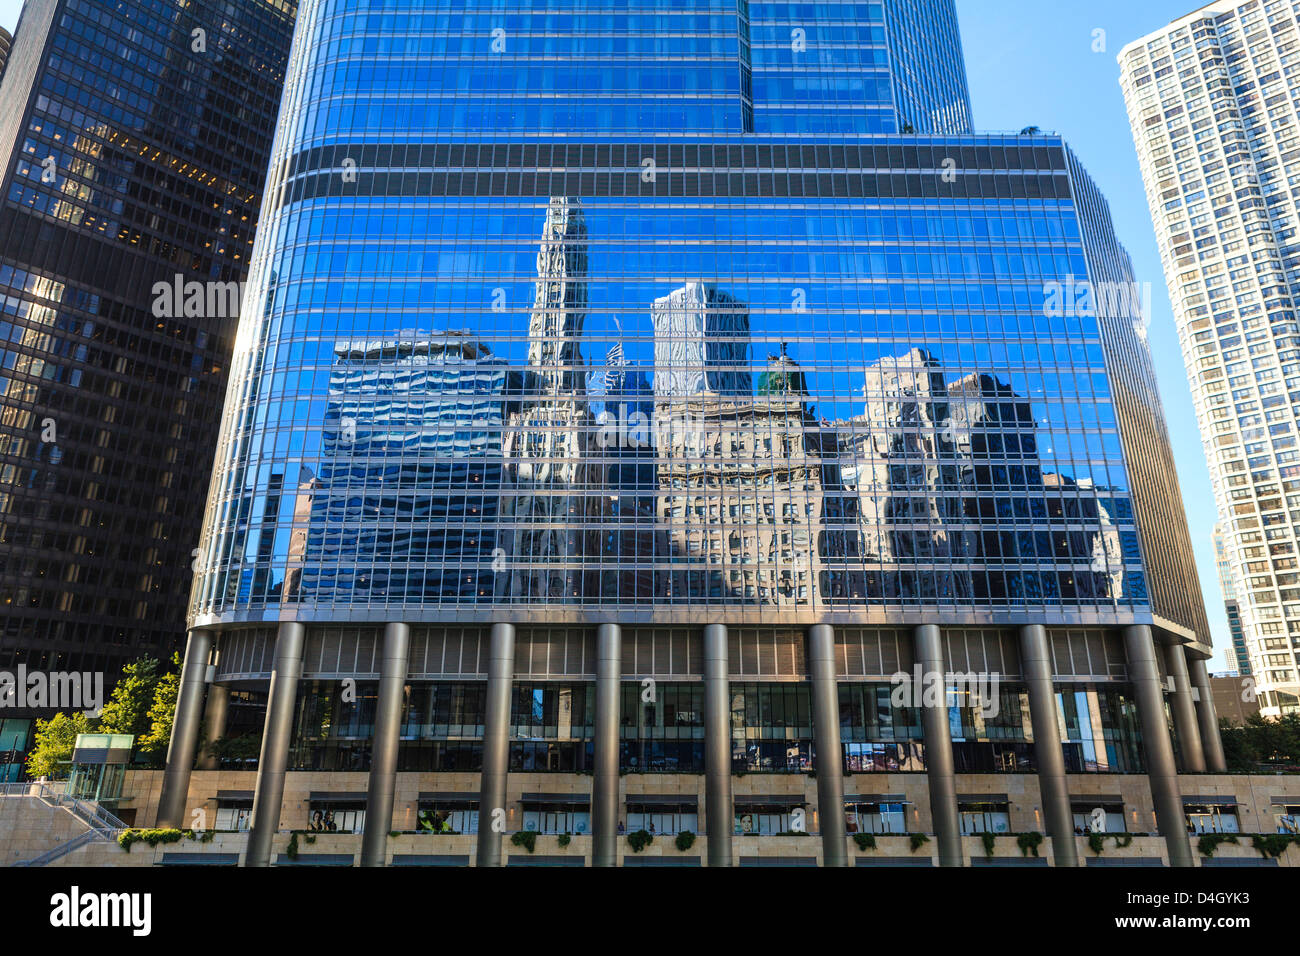 Skyscrapers on West Wacker Drive reflected in the Trump Tower, Chicago, Illinois, USA - Stock Image